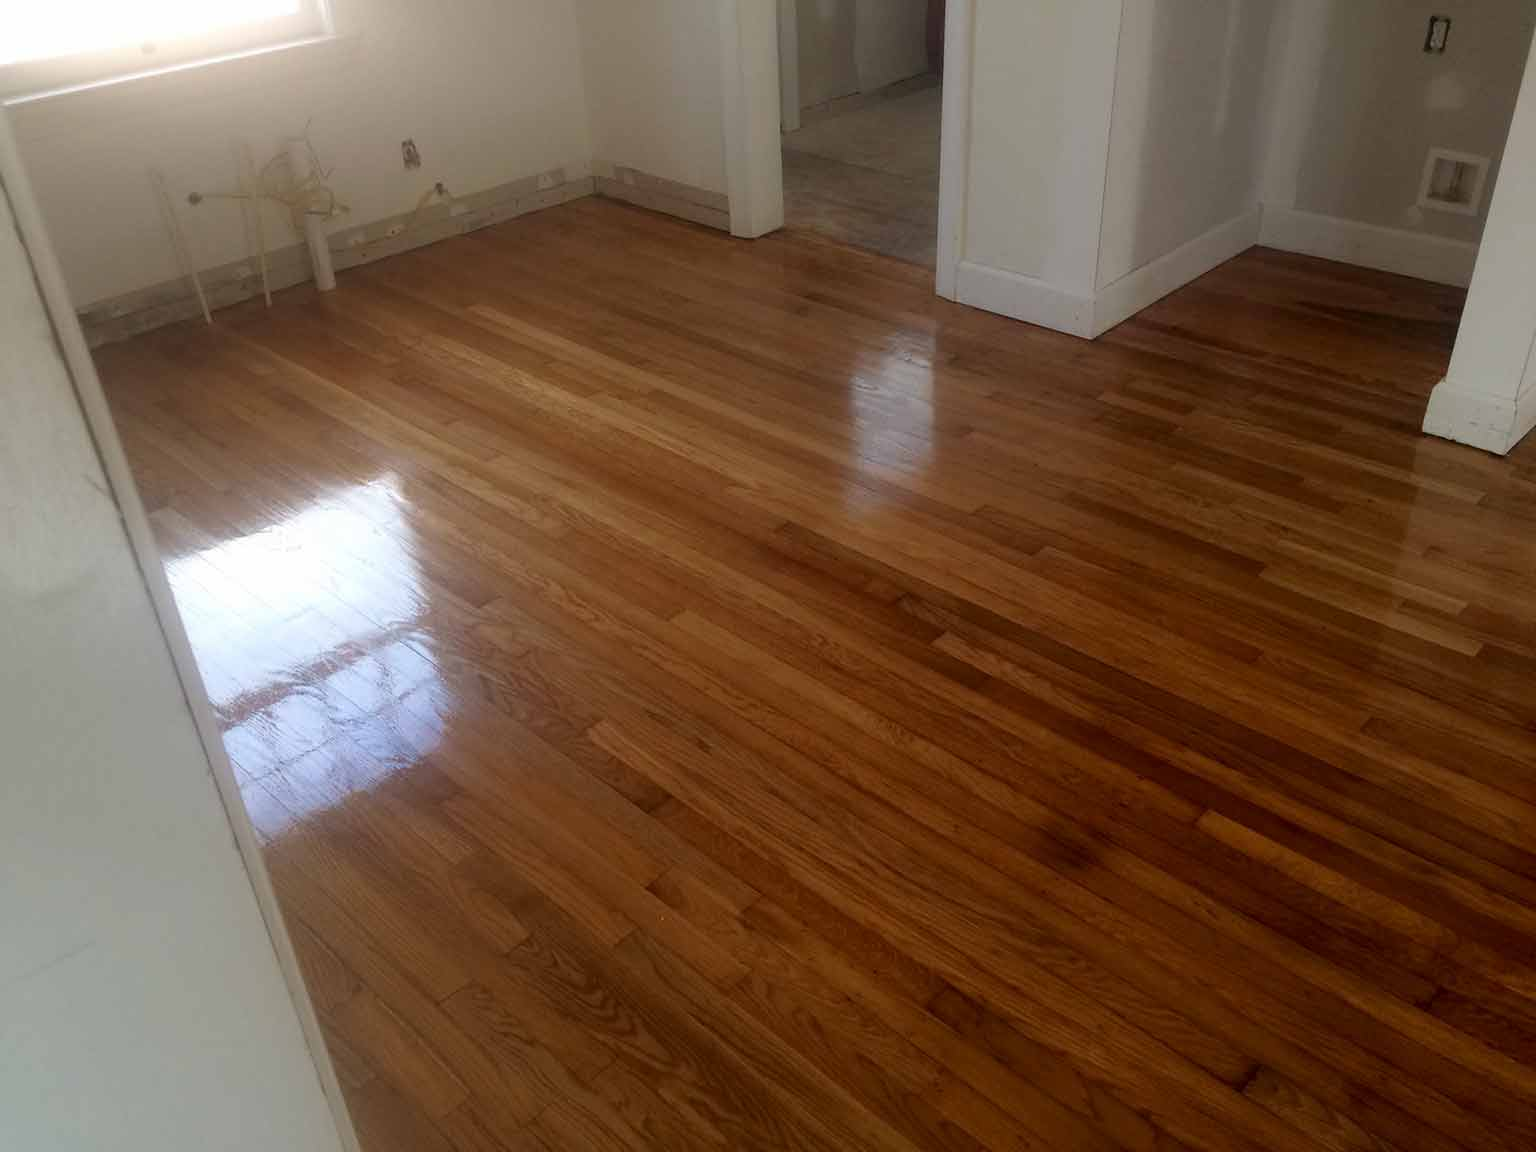 Hardwood Floor Refinishing - That Homebird Life